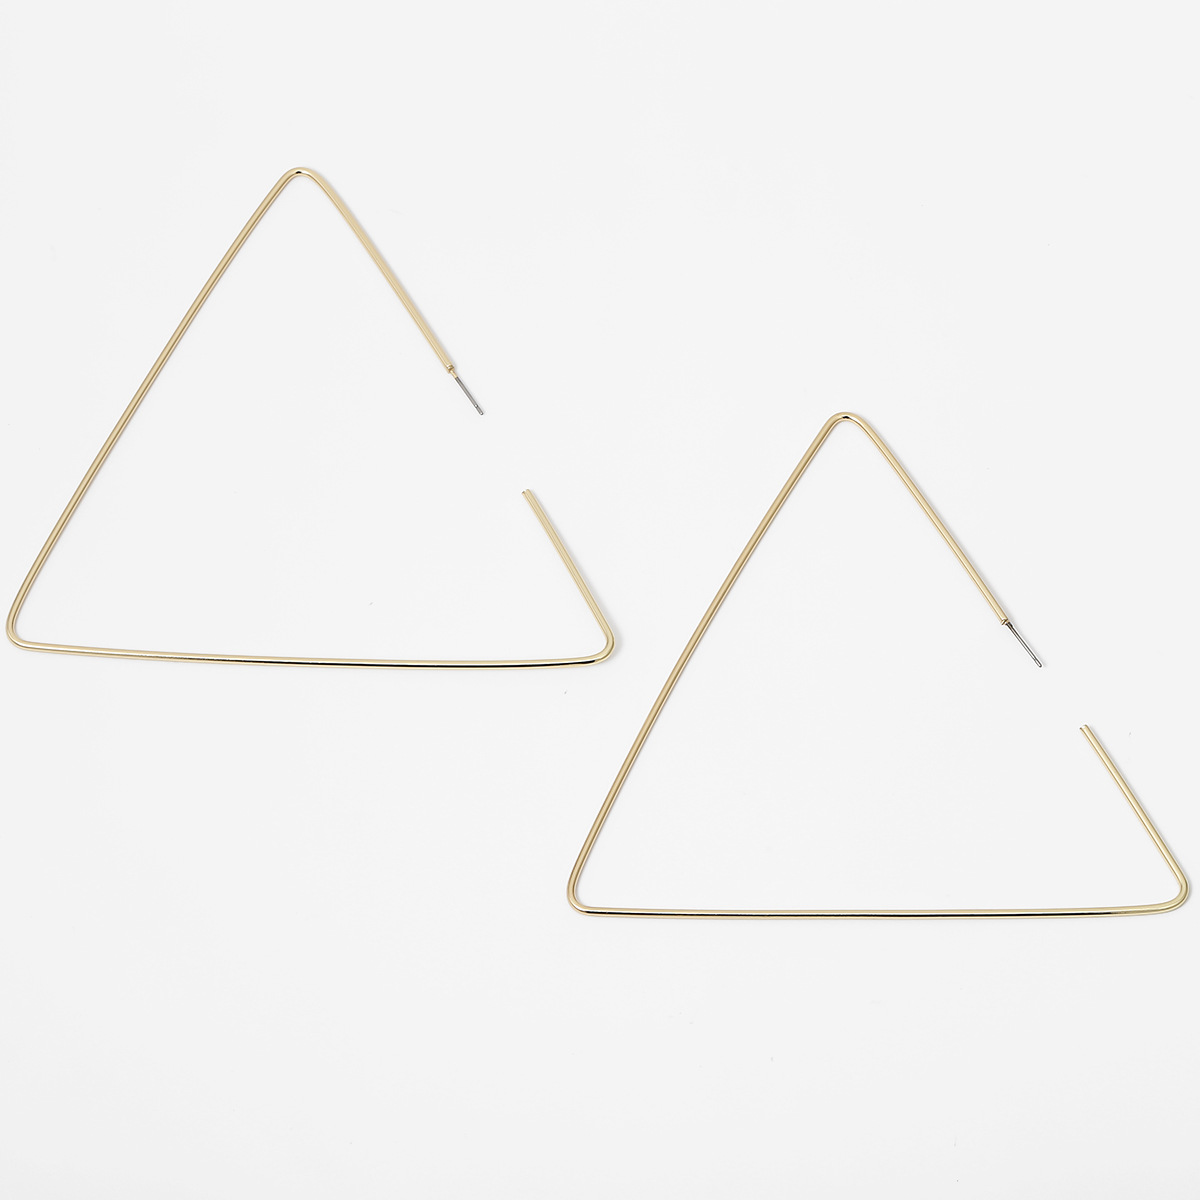 Jewelry fashion exaggerated alloy triangle earrings ladies oversized metal geometric earrings NHXR201311